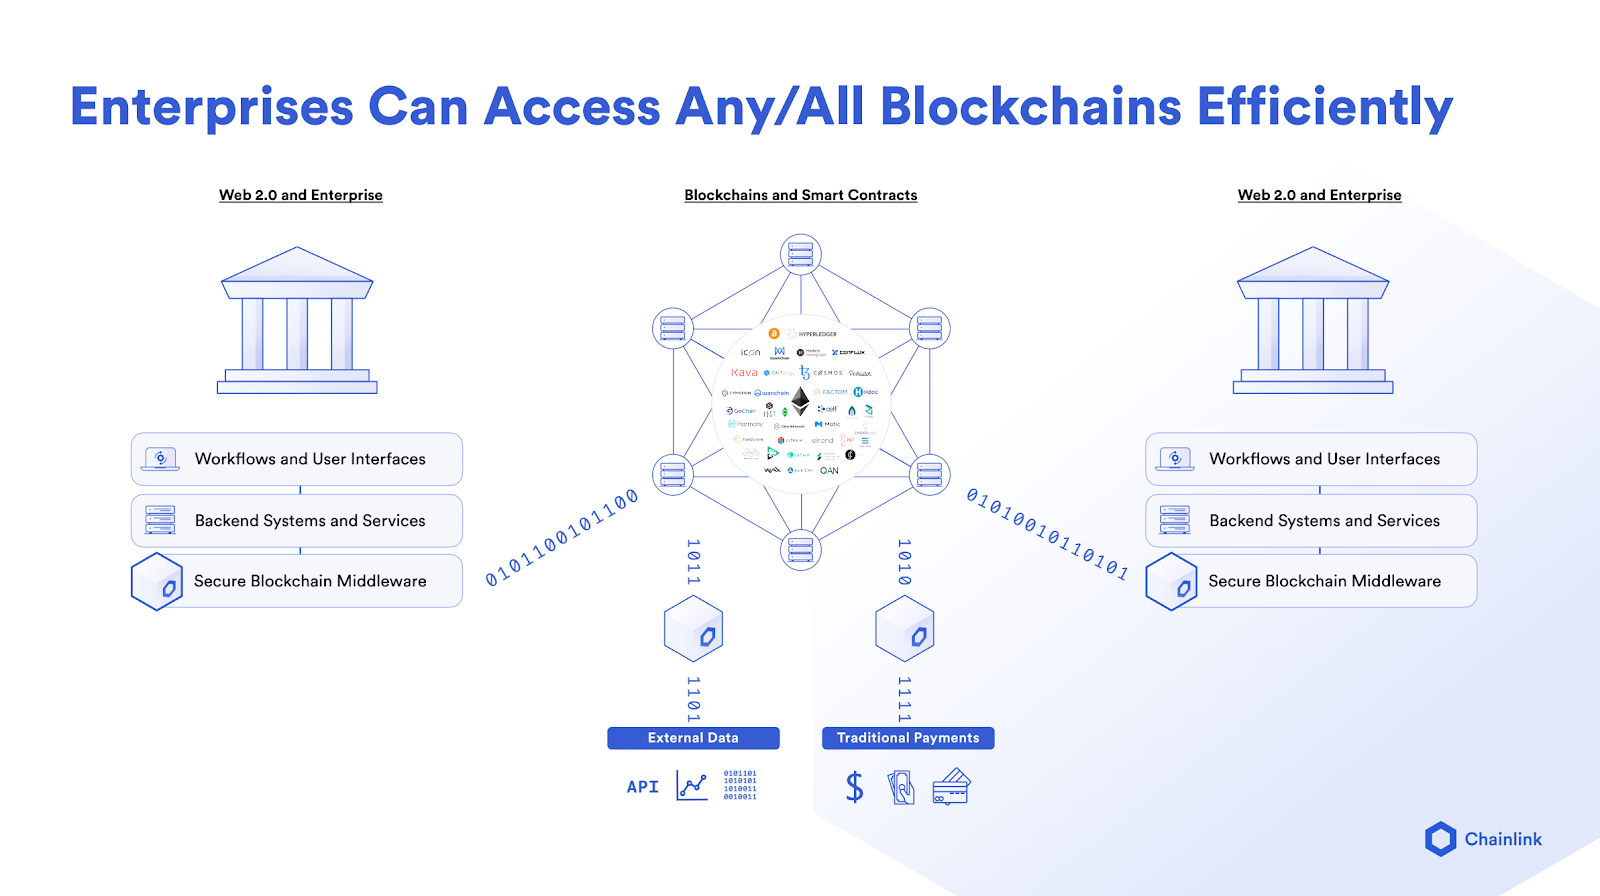 Enterprises Can Access Any/All Blockchains Efficiently